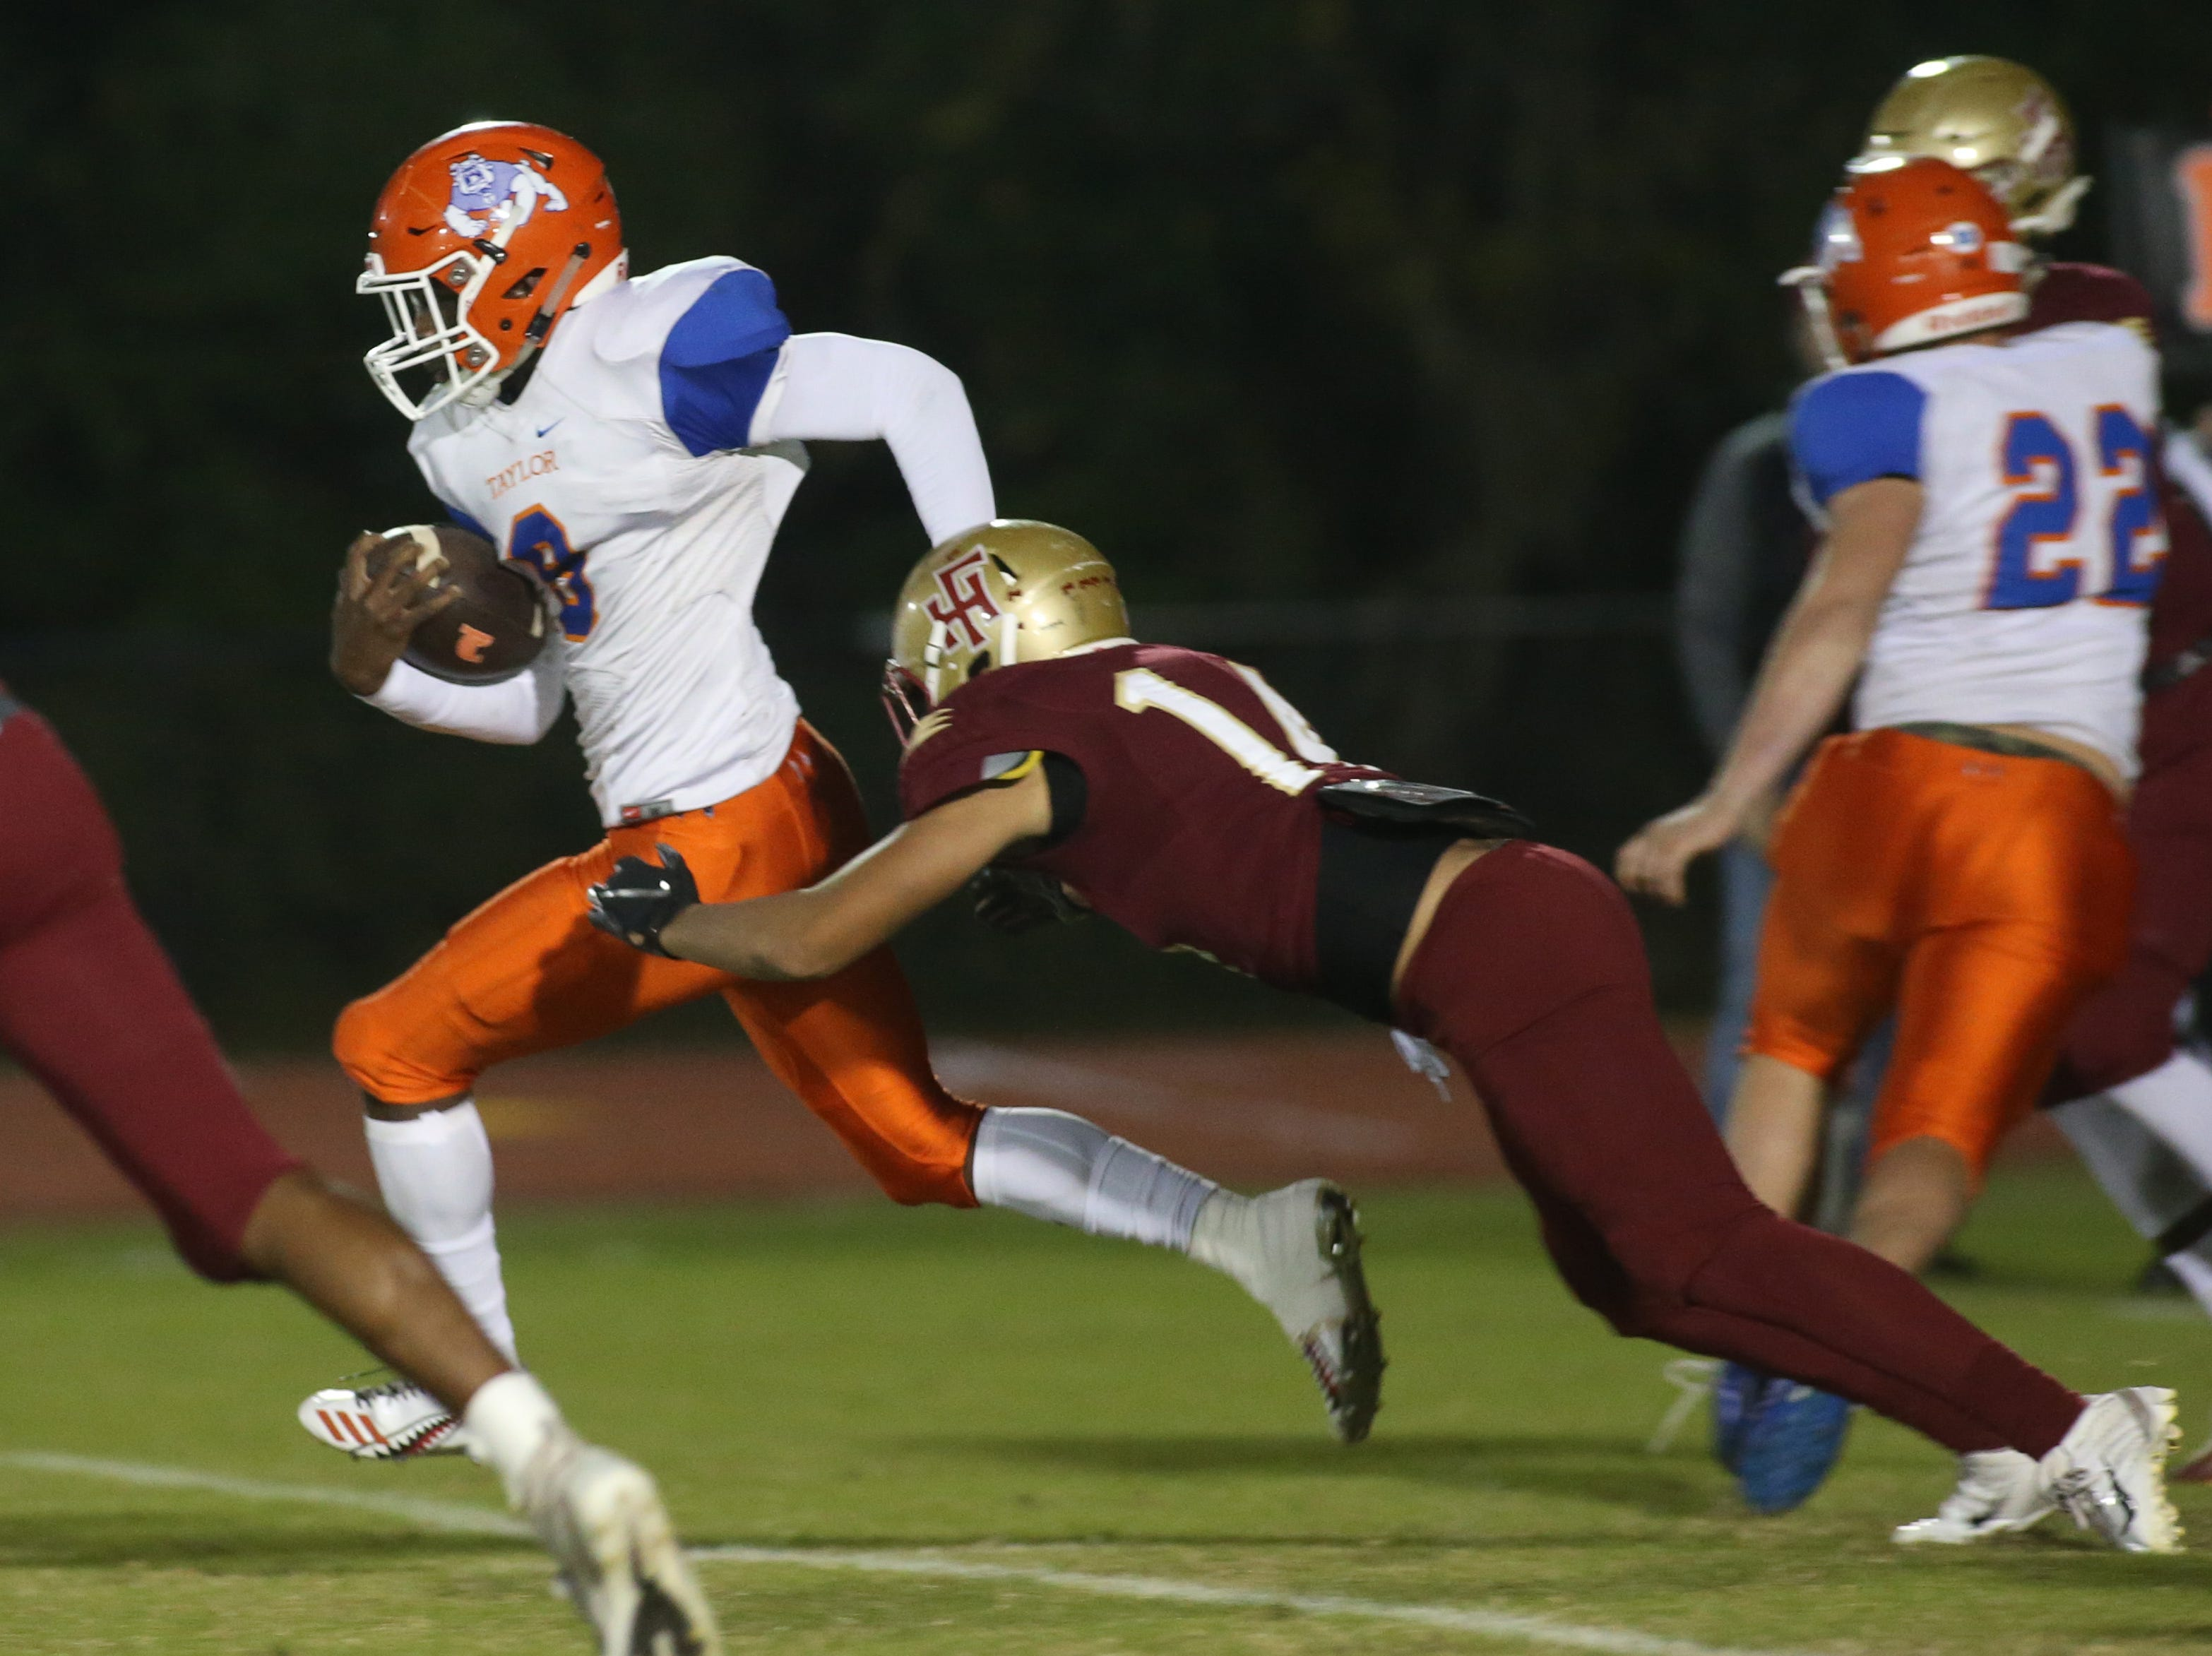 The Taylor County Bulldogs play the Florida High Seminoles in a Region 1-3A final on Friday, Nov. 23, 2018.